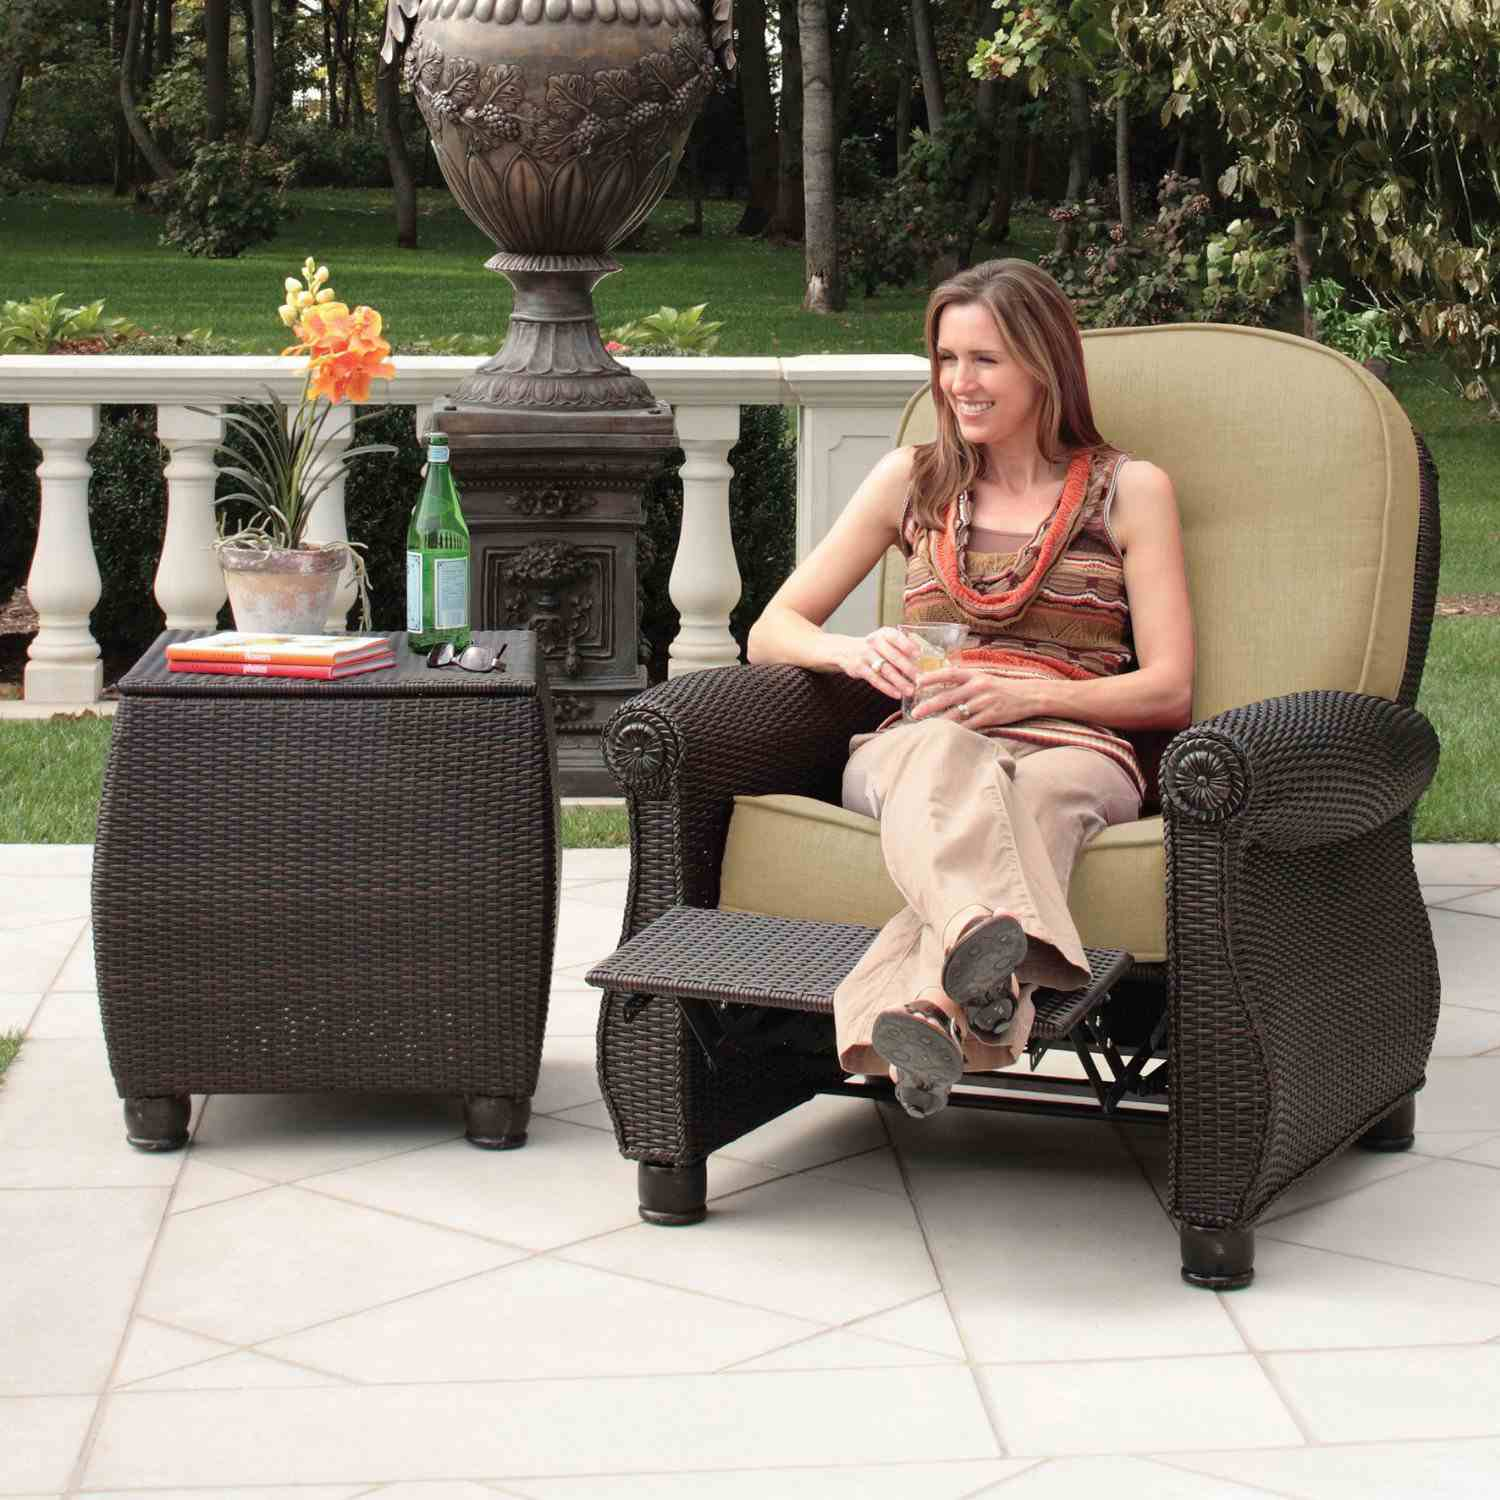 Outdoor Recliners for the Patio or Poolside